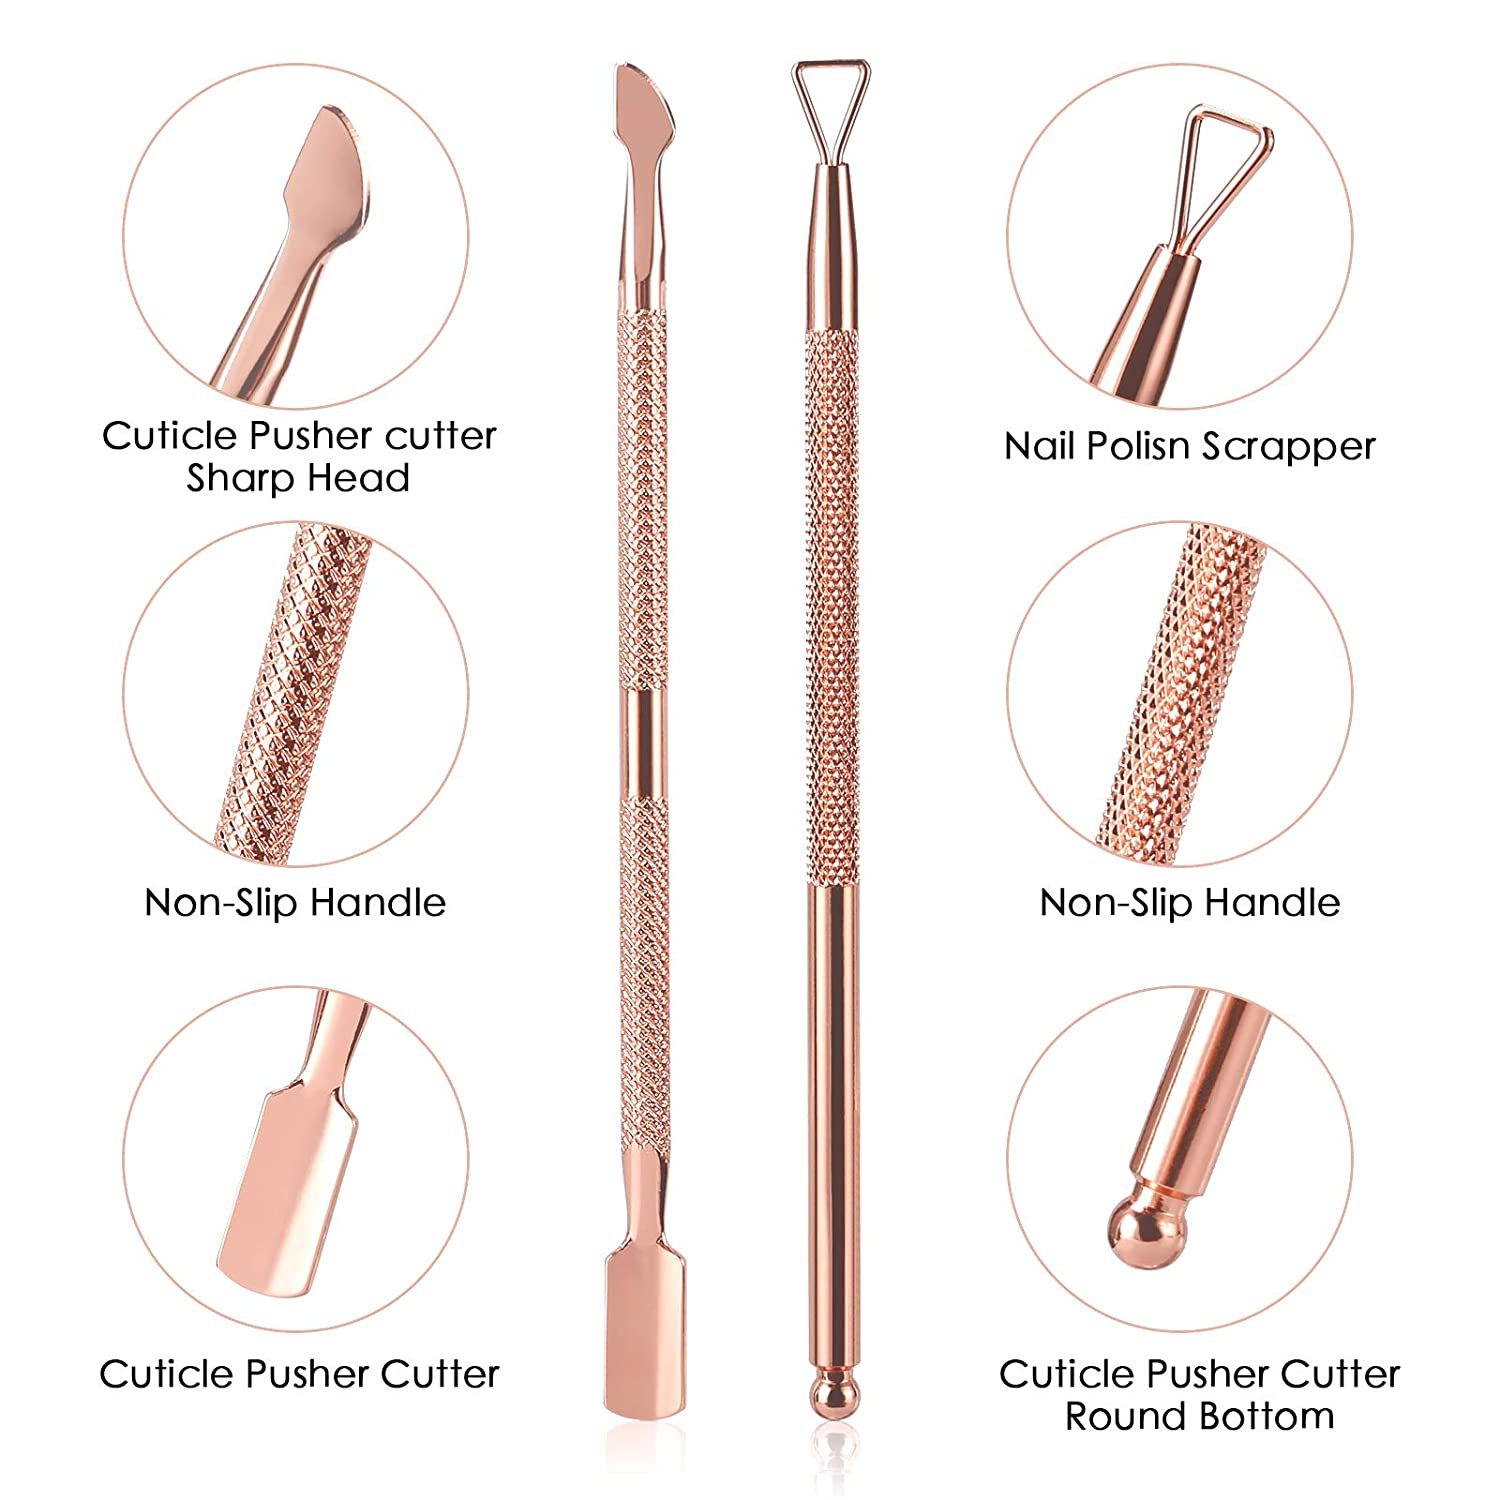 Cuticle Trimmer with Cuticle Pusher and Cutter-YINYIN Cuticle Cutter Cuticle Nipper Professional Stainless Steel Cuticle Clipper